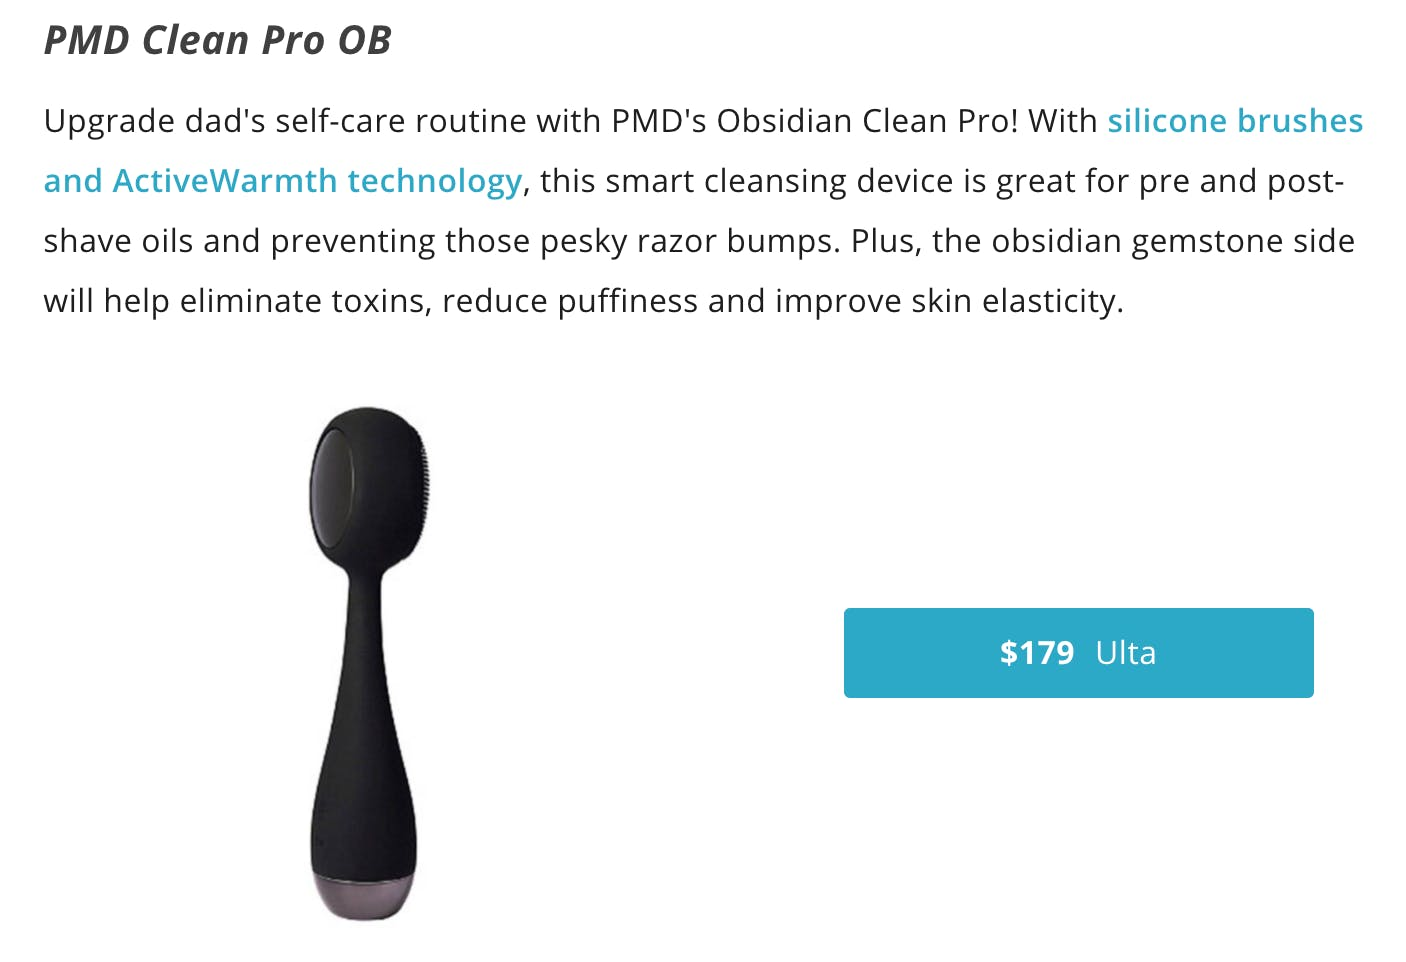 PMD Clean Pro OB in E! Online